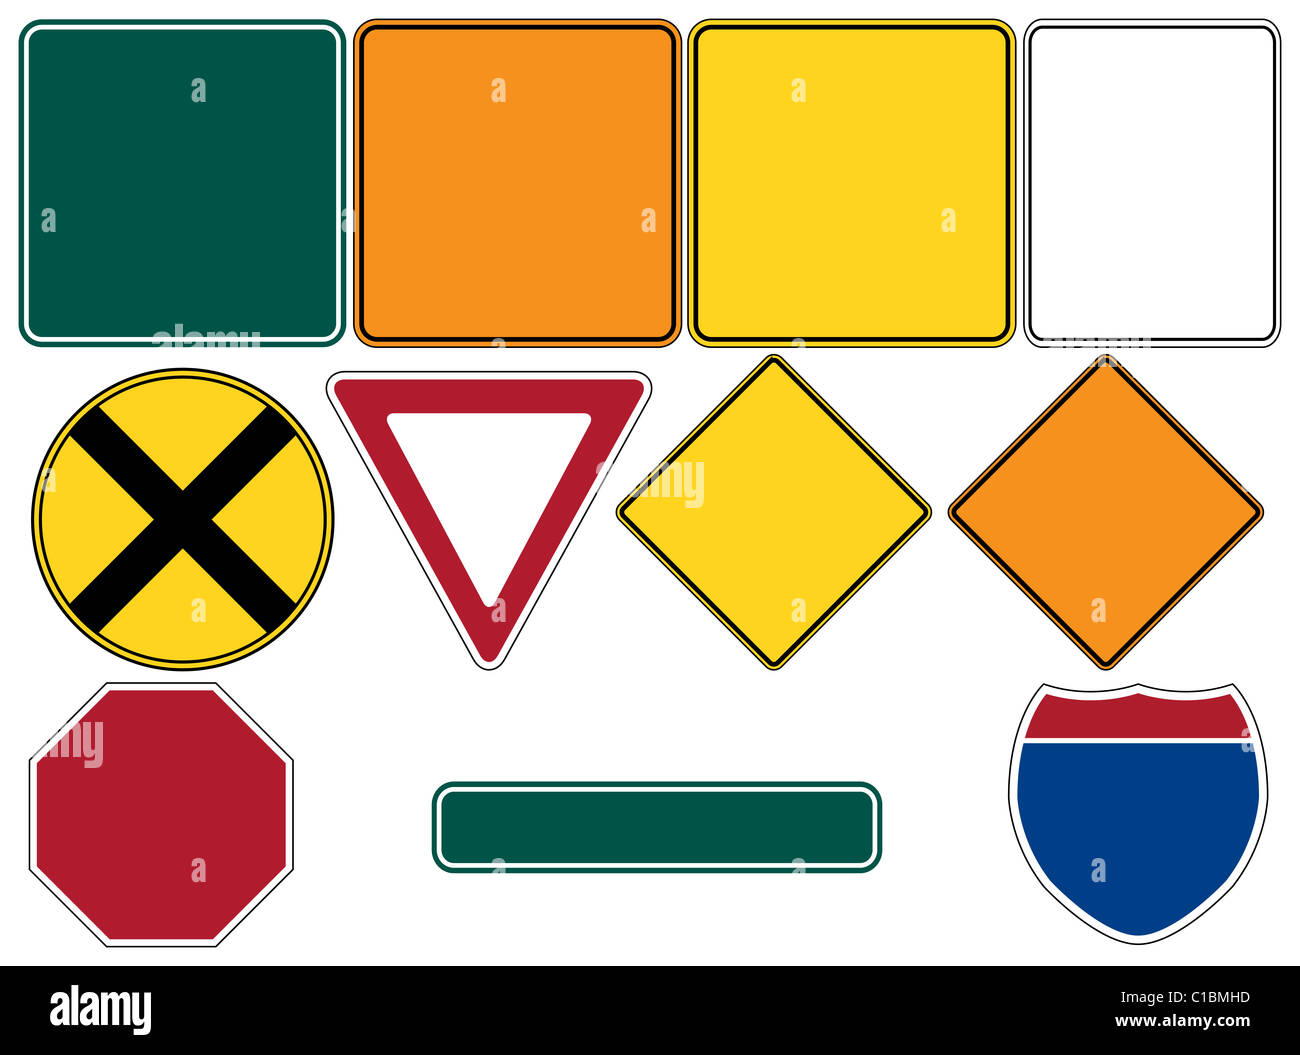 Yield Sign Blank Stock Photos Amp Yield Sign Blank Stock